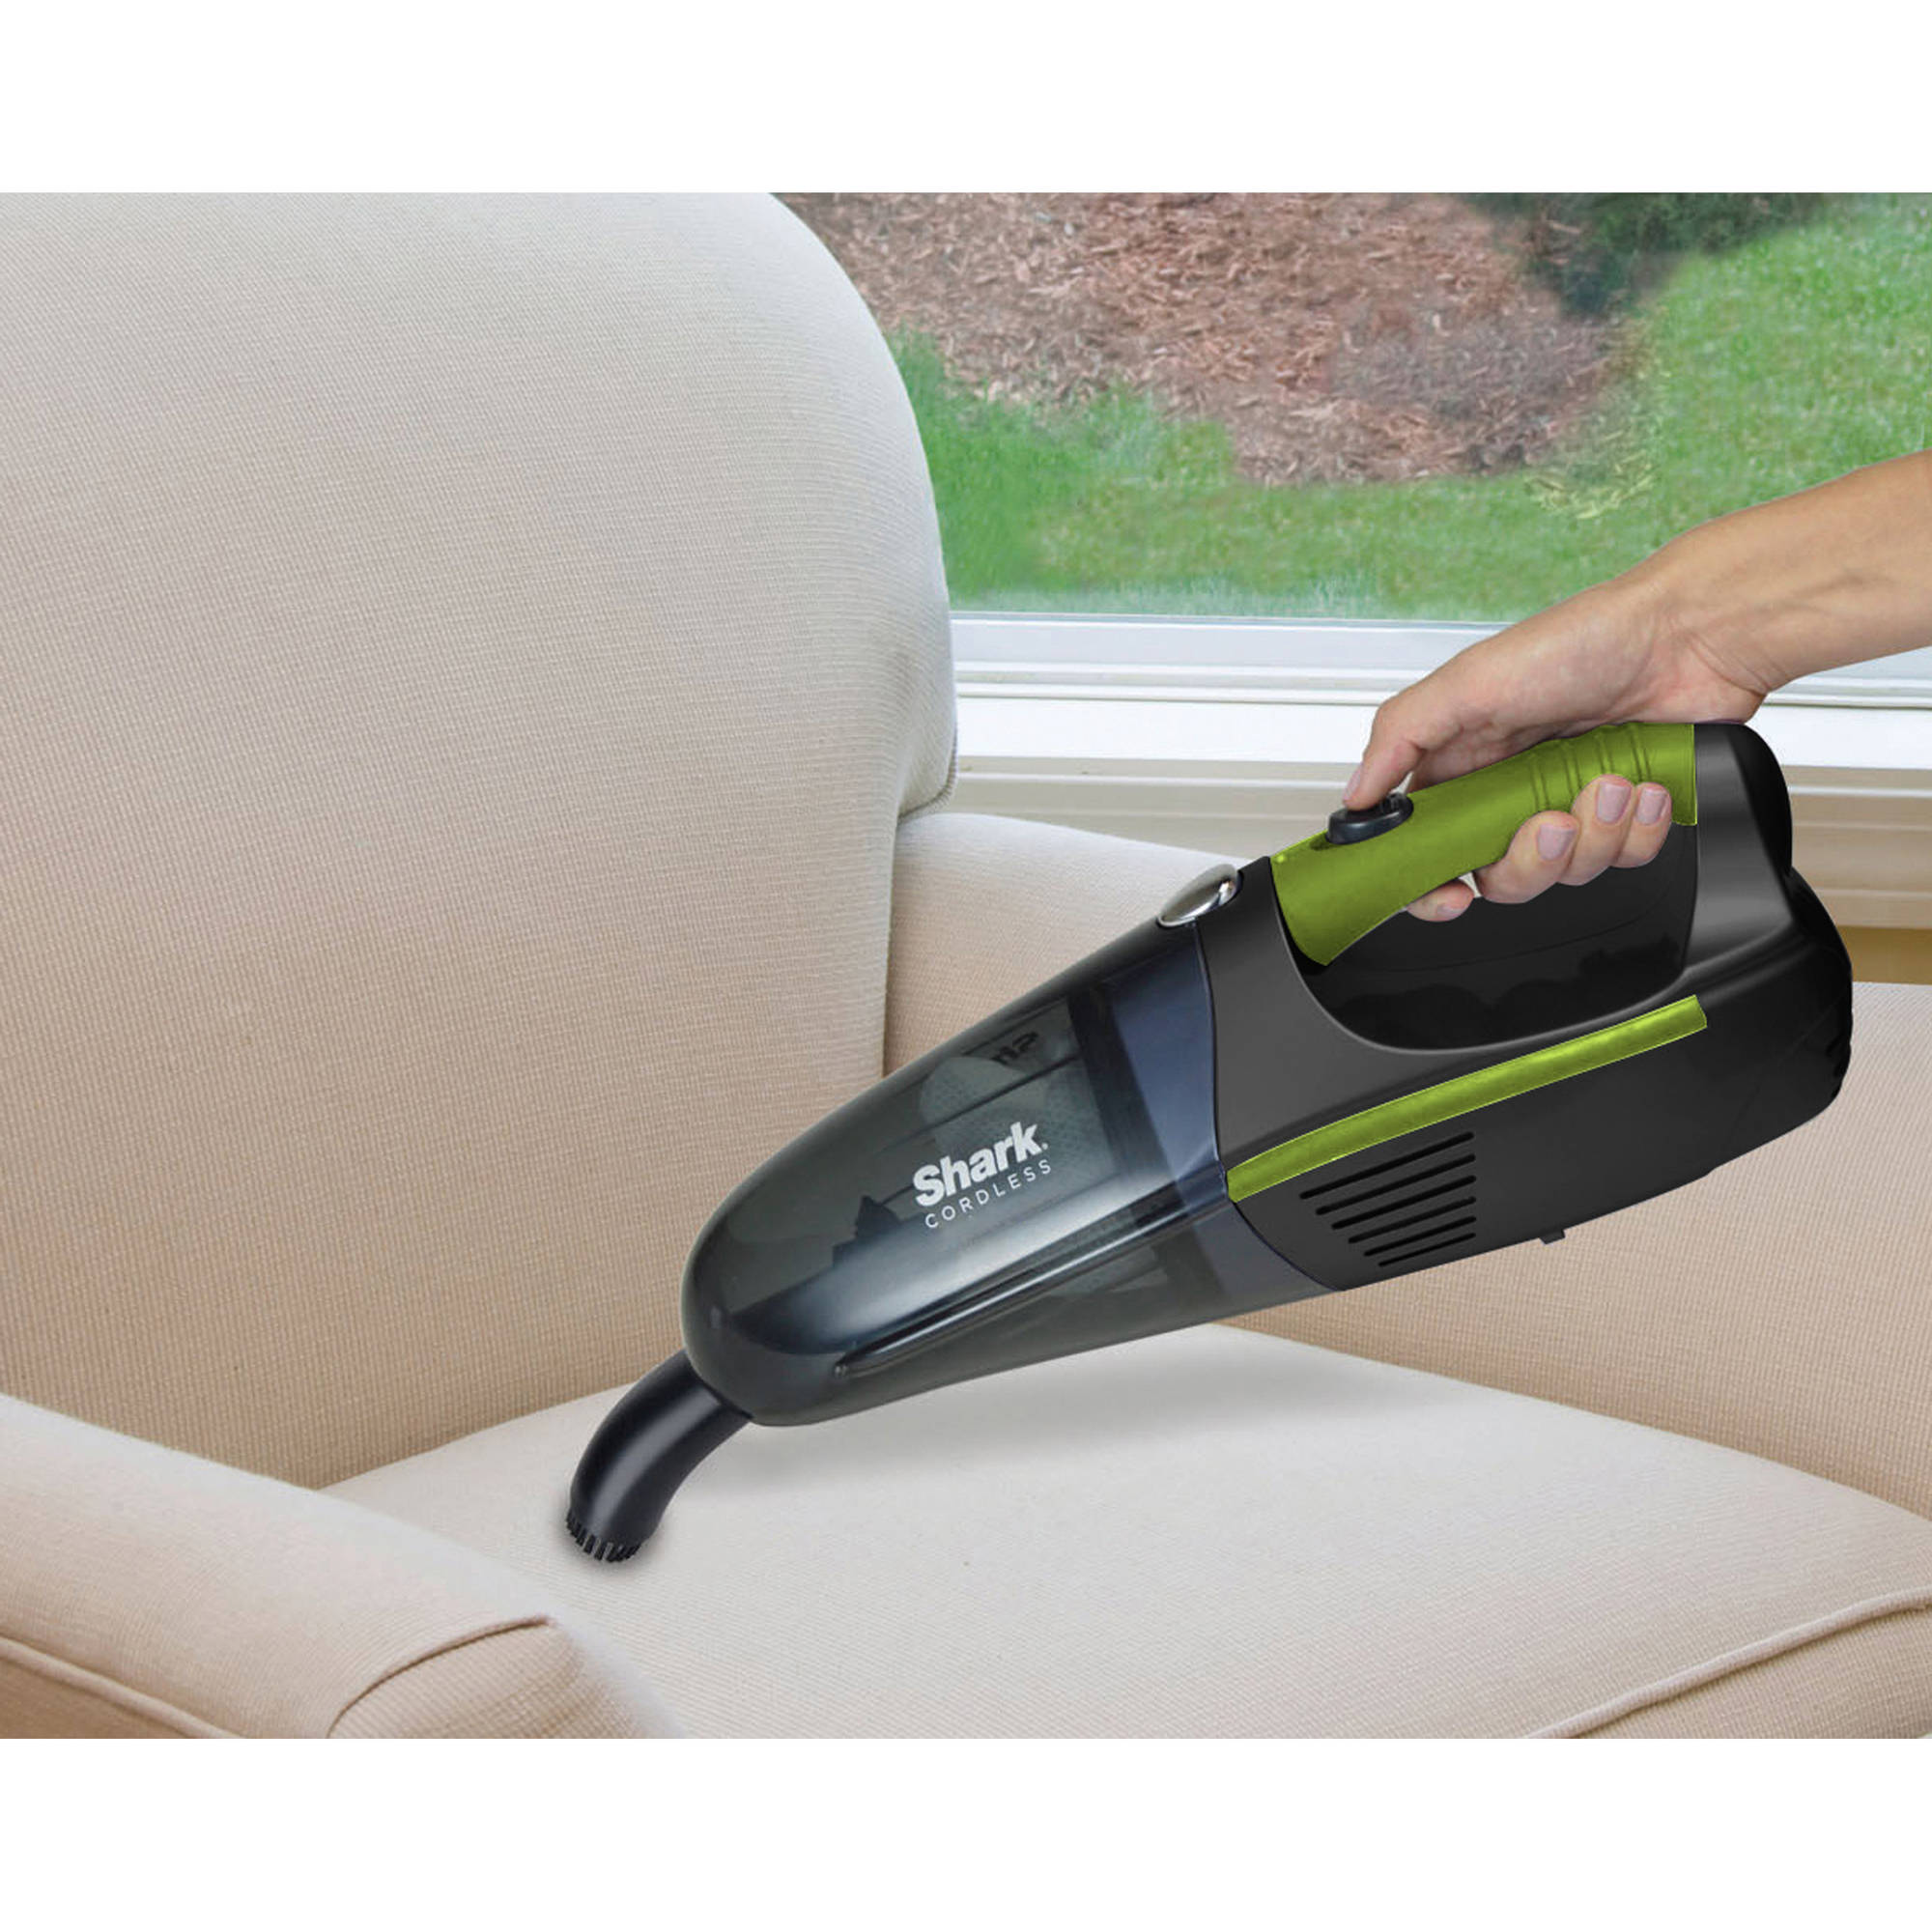 Shark Cordless Pet Perfect II Hand Vacuum, Sv760Wm